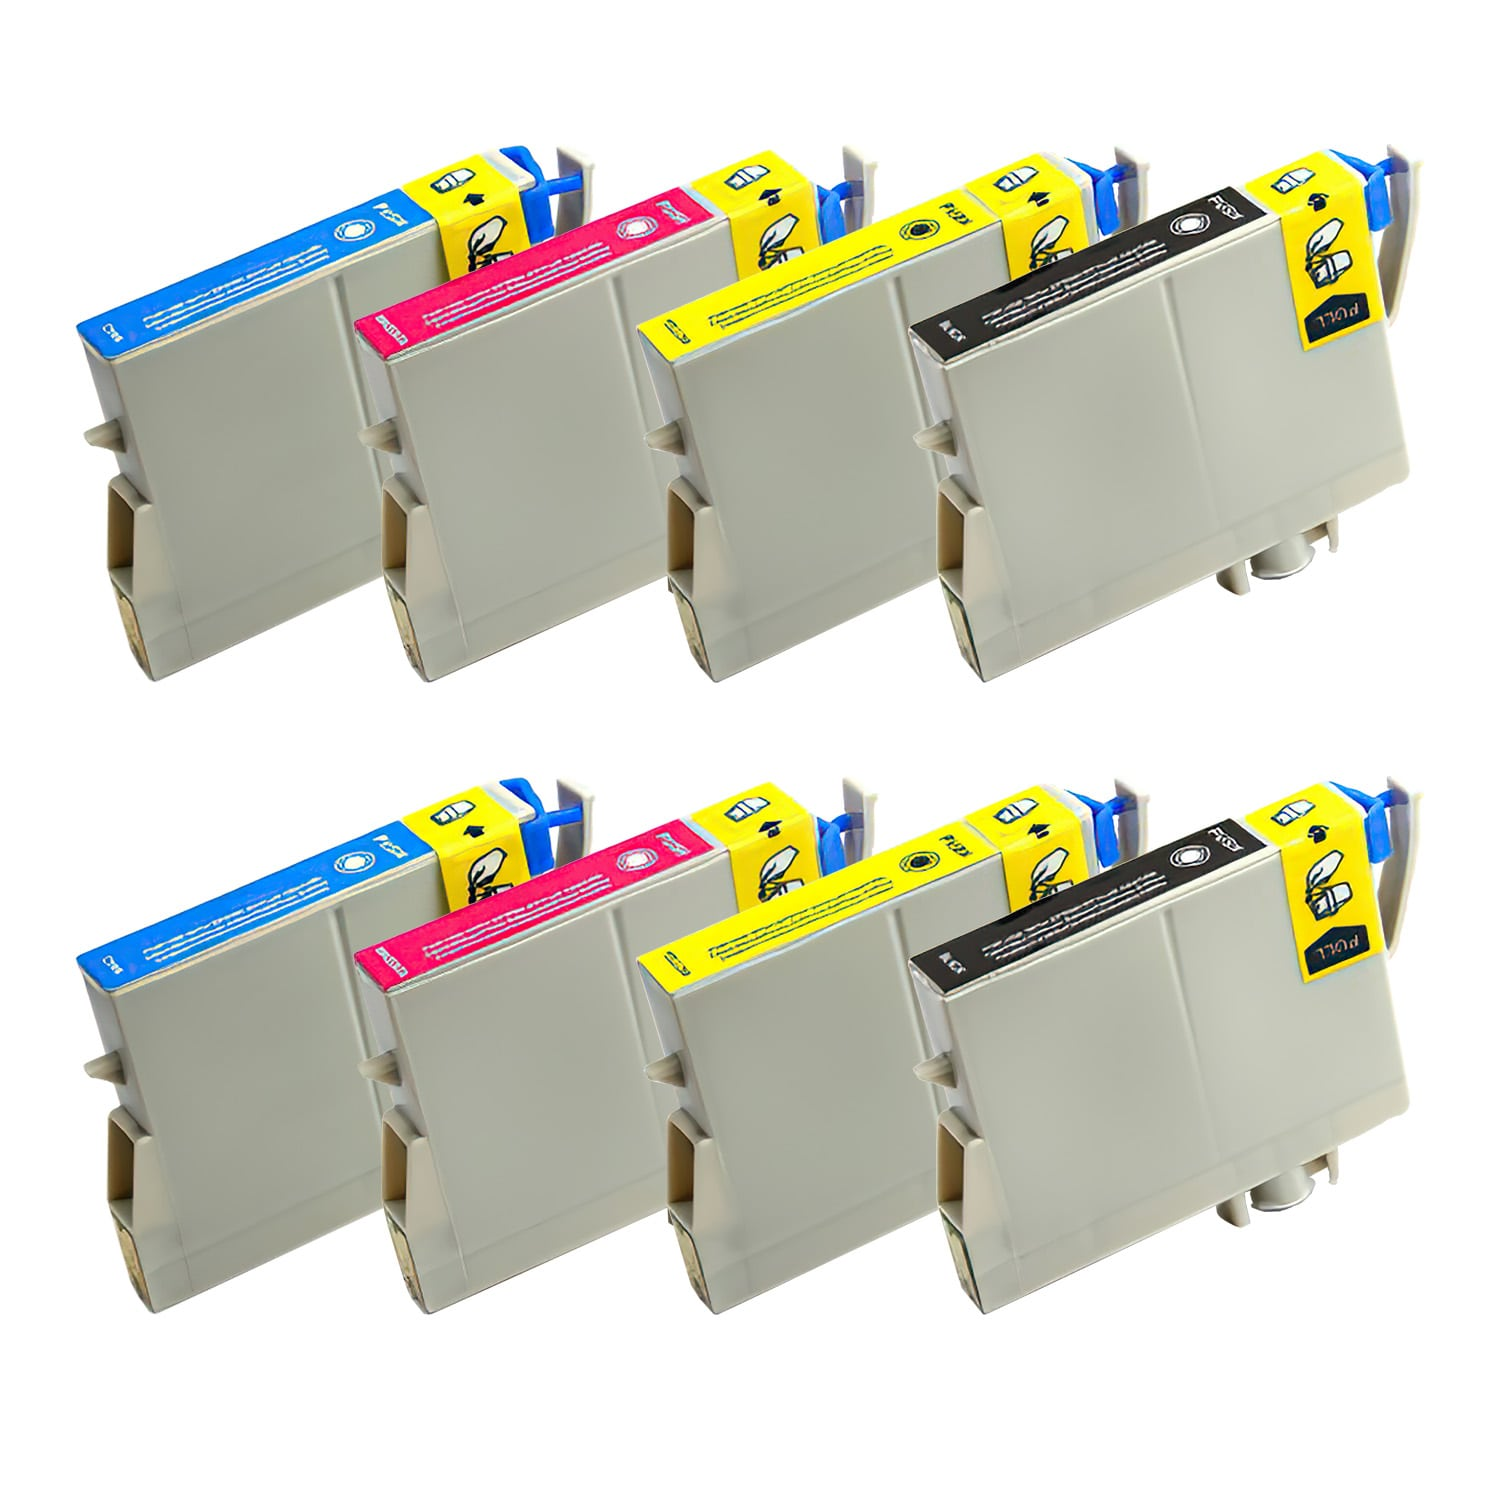 Remanufactured Epson 252 Inkjet Pack - 8 Cartridges